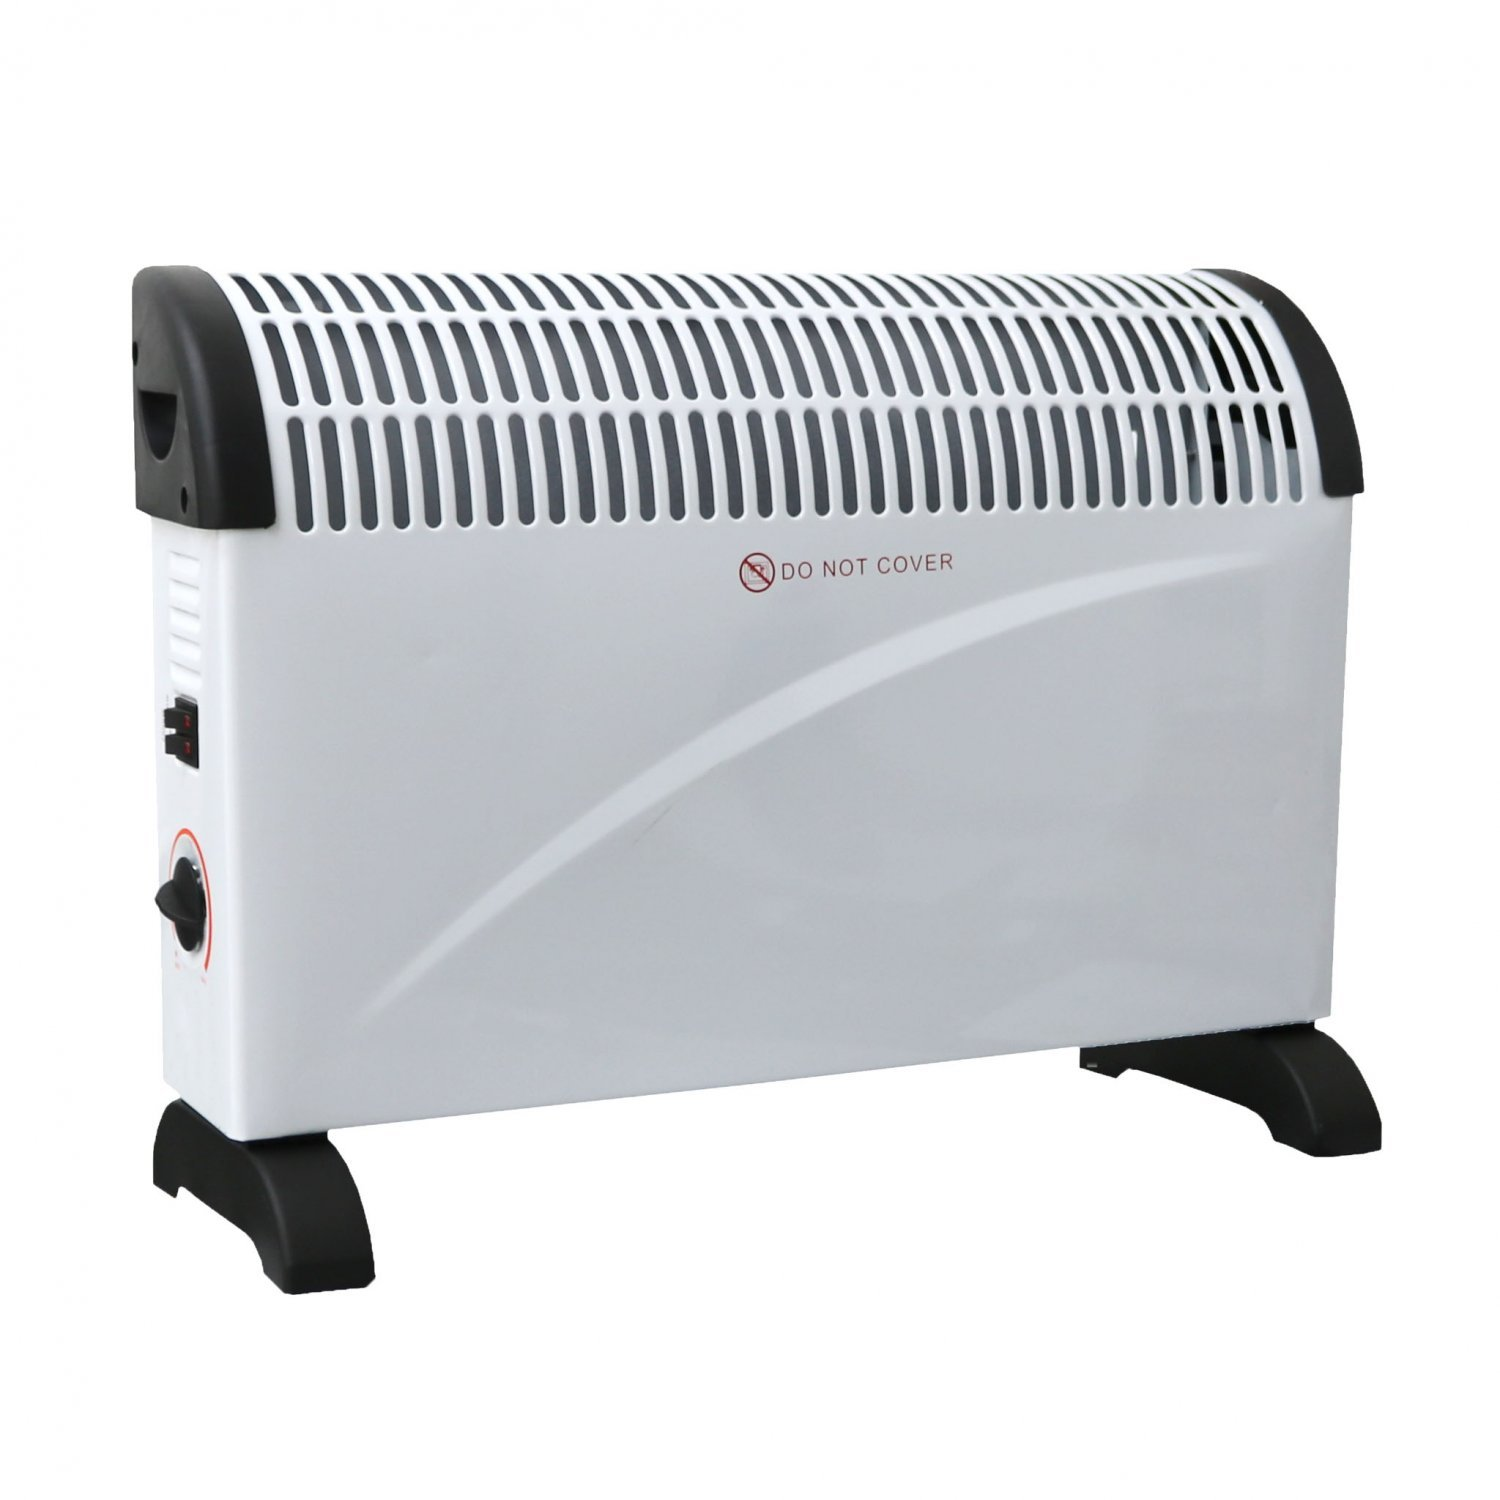 Furniture Design App Free 2 Kw Convector Heater Wall Mounted Or Free Standing 163